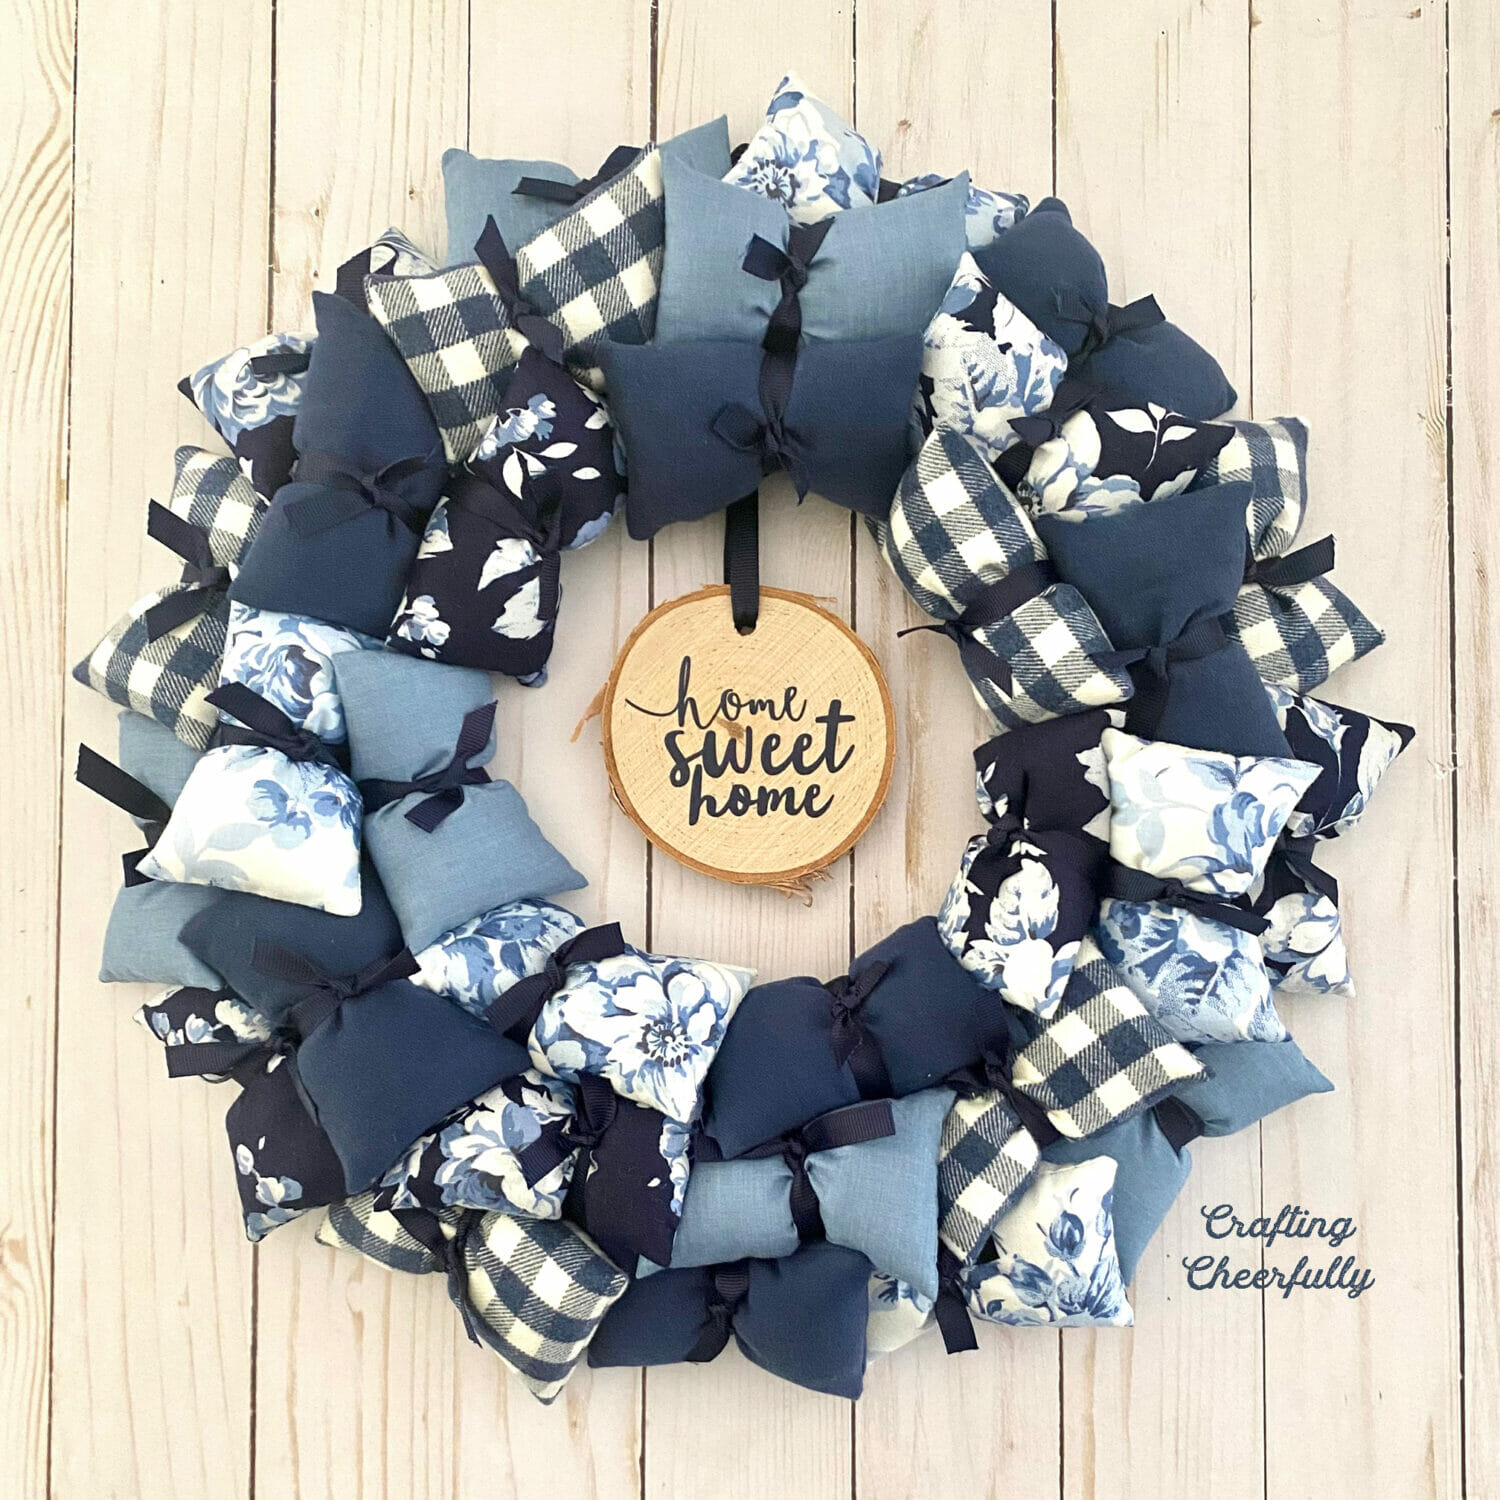 """Handmade pillow wreath in blue and white fabrics with a wood slice hanging in the center that says """"Home Sweet Home"""""""